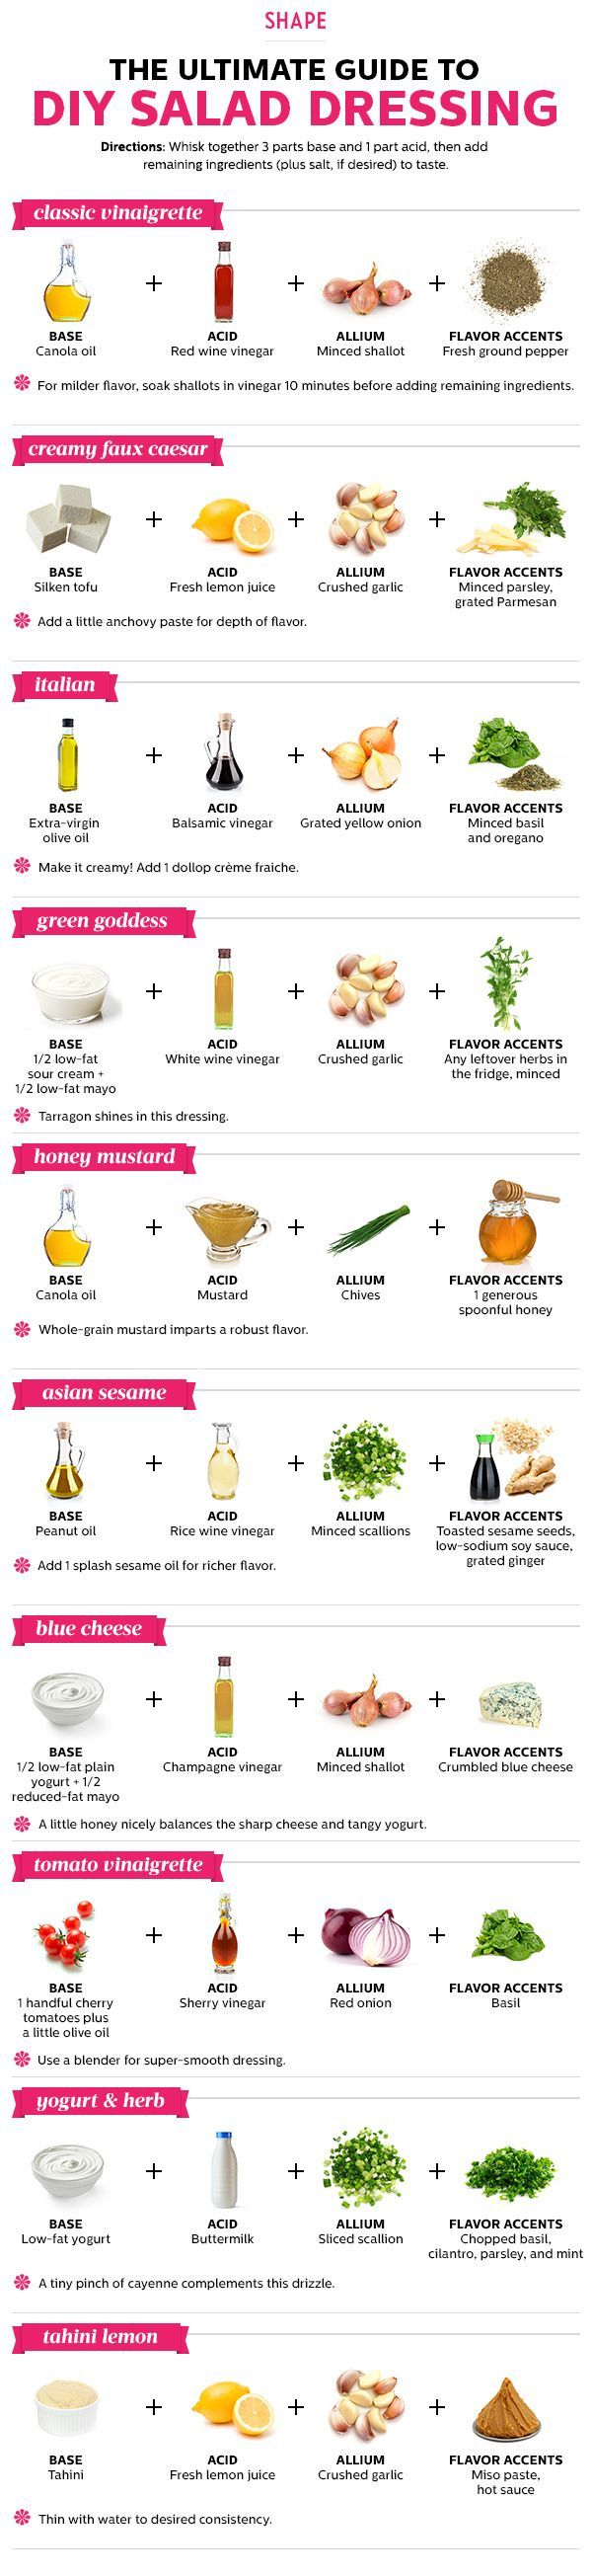 the ultimate guide to diy salad dressings